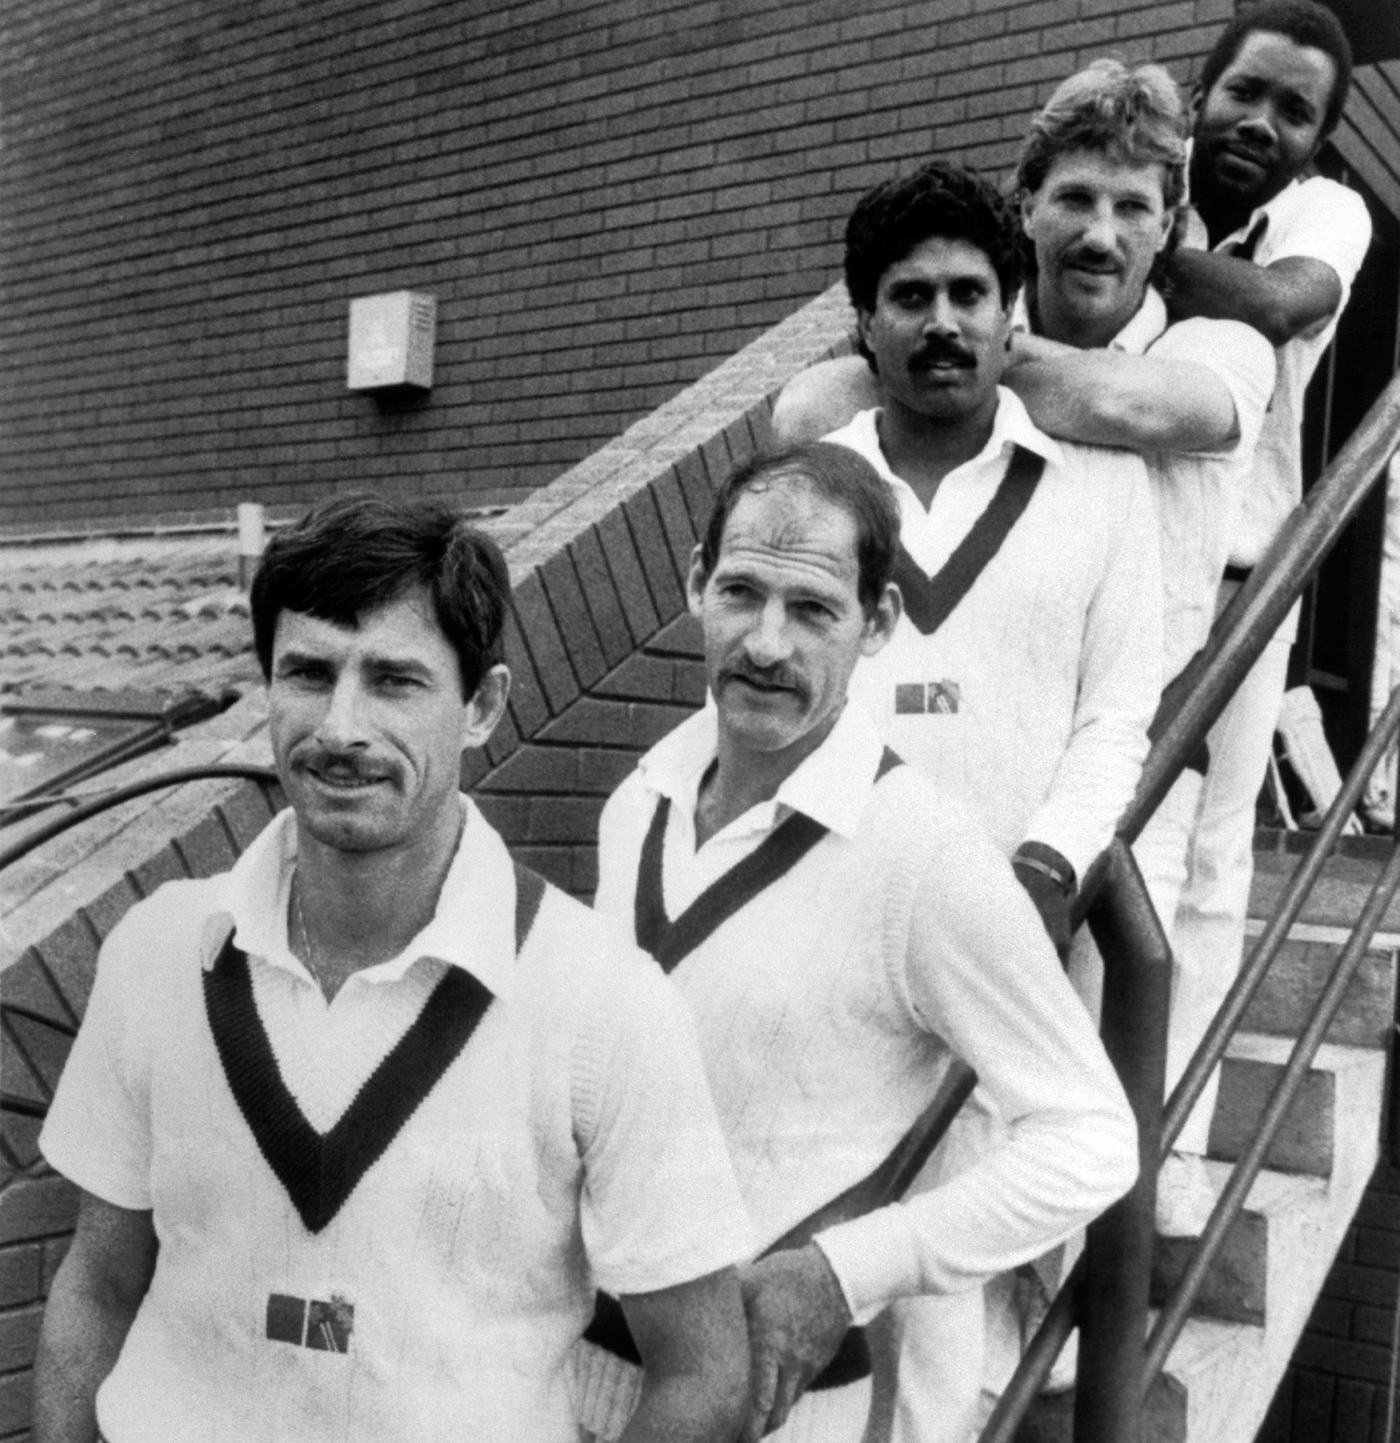 All rounders 80s